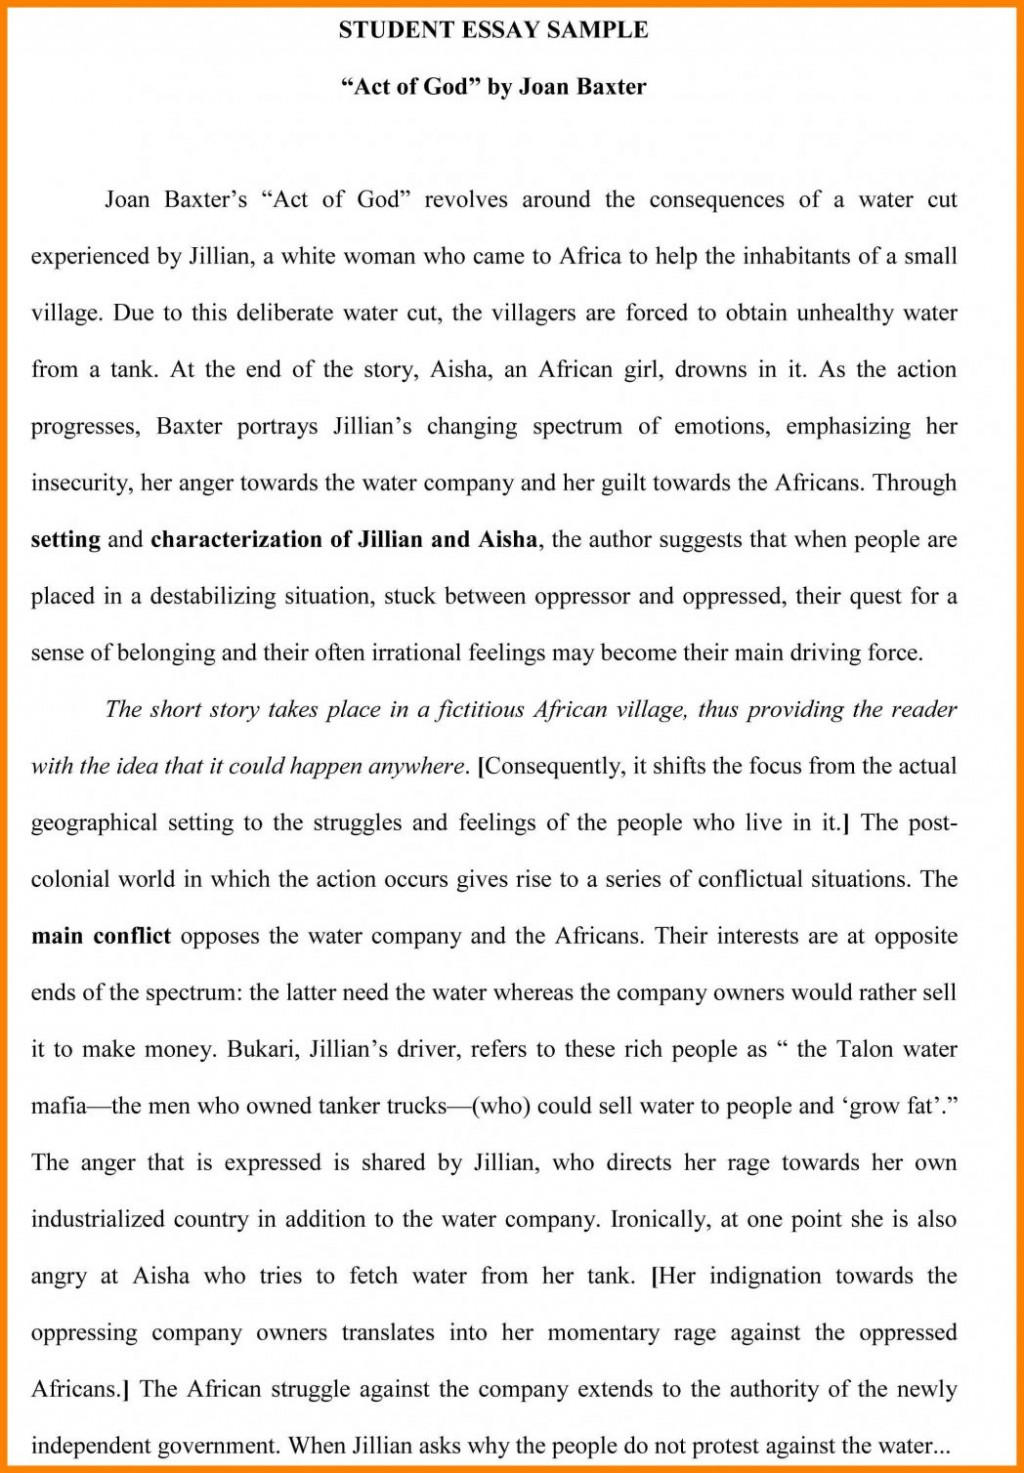 003 Examples Of Process Essays Pdf How To Write Good Student Better Download Descriptive Great Law Steve Foster Lauren Starkey 1048x1508 Essay Ideas Marvelous Funny Analysis Large